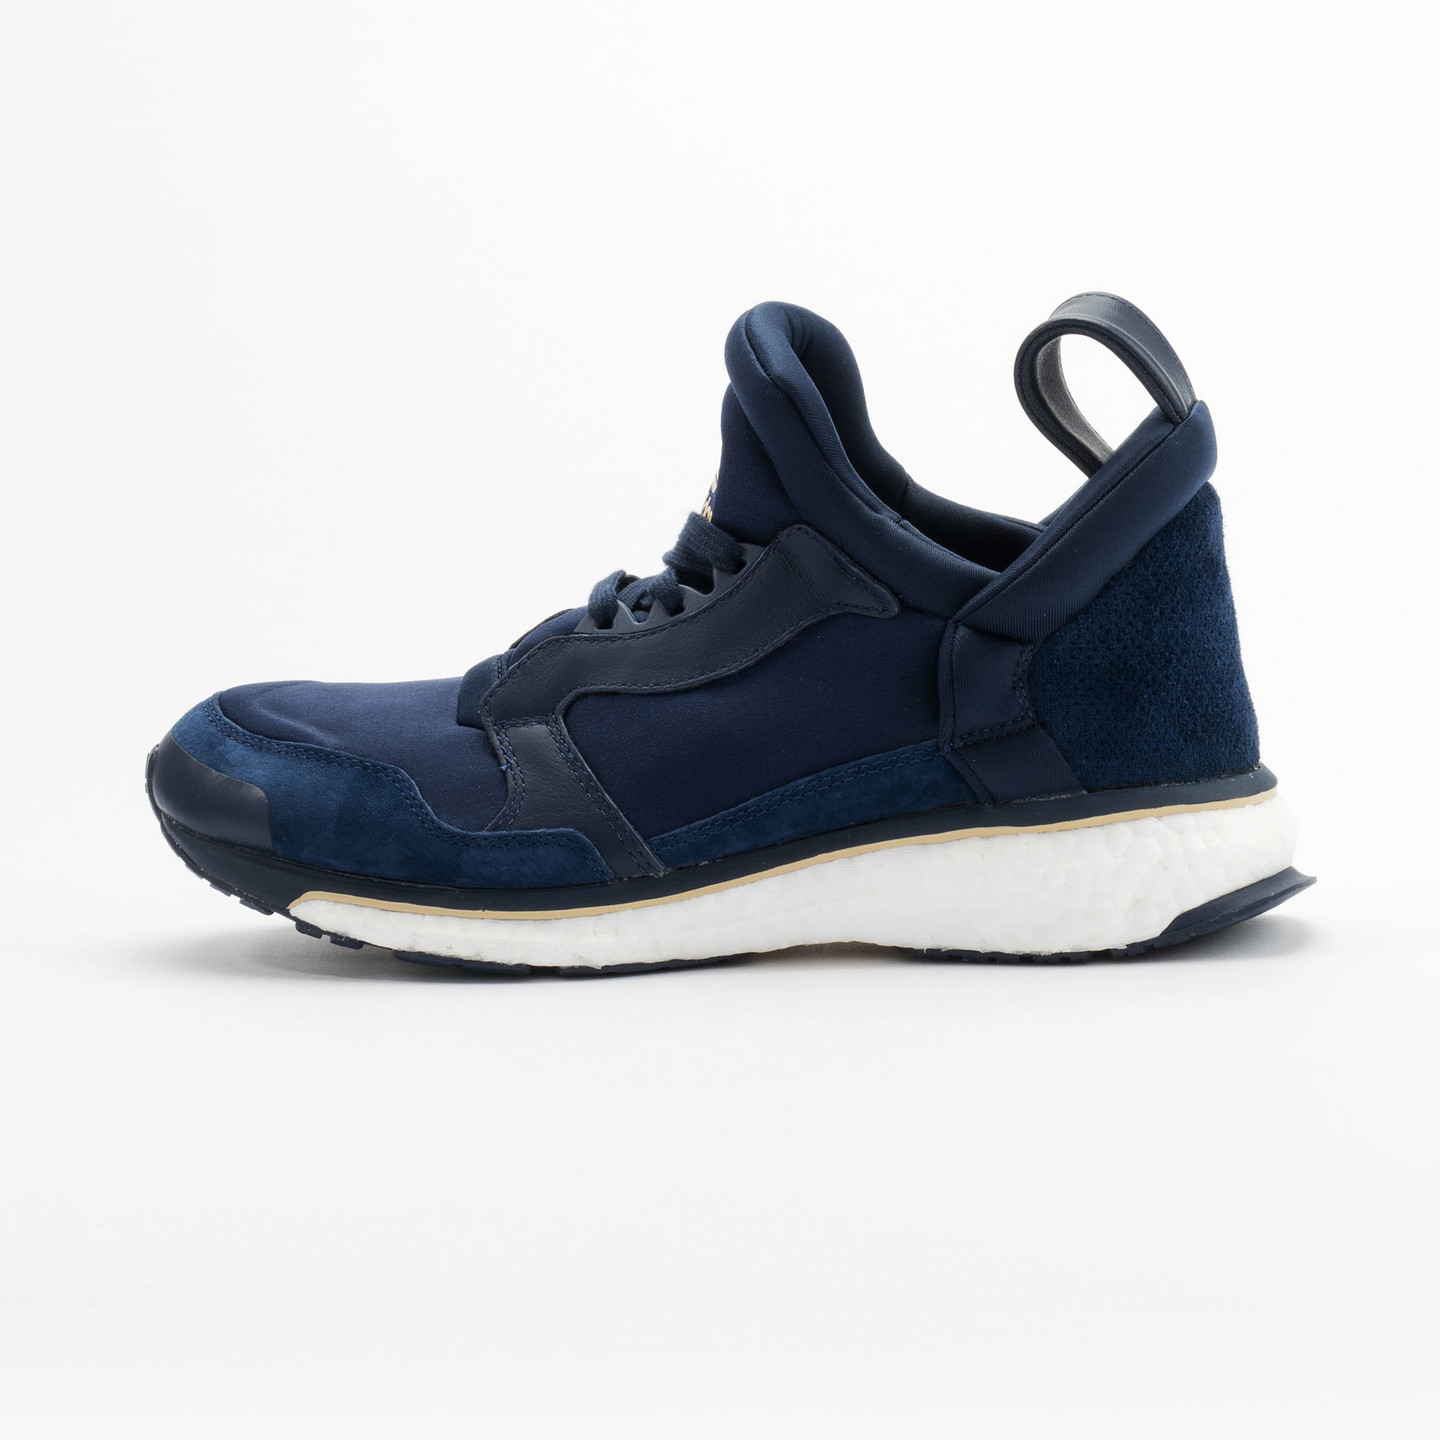 Adidas Blue Boost Indigo / White S81487-43.33